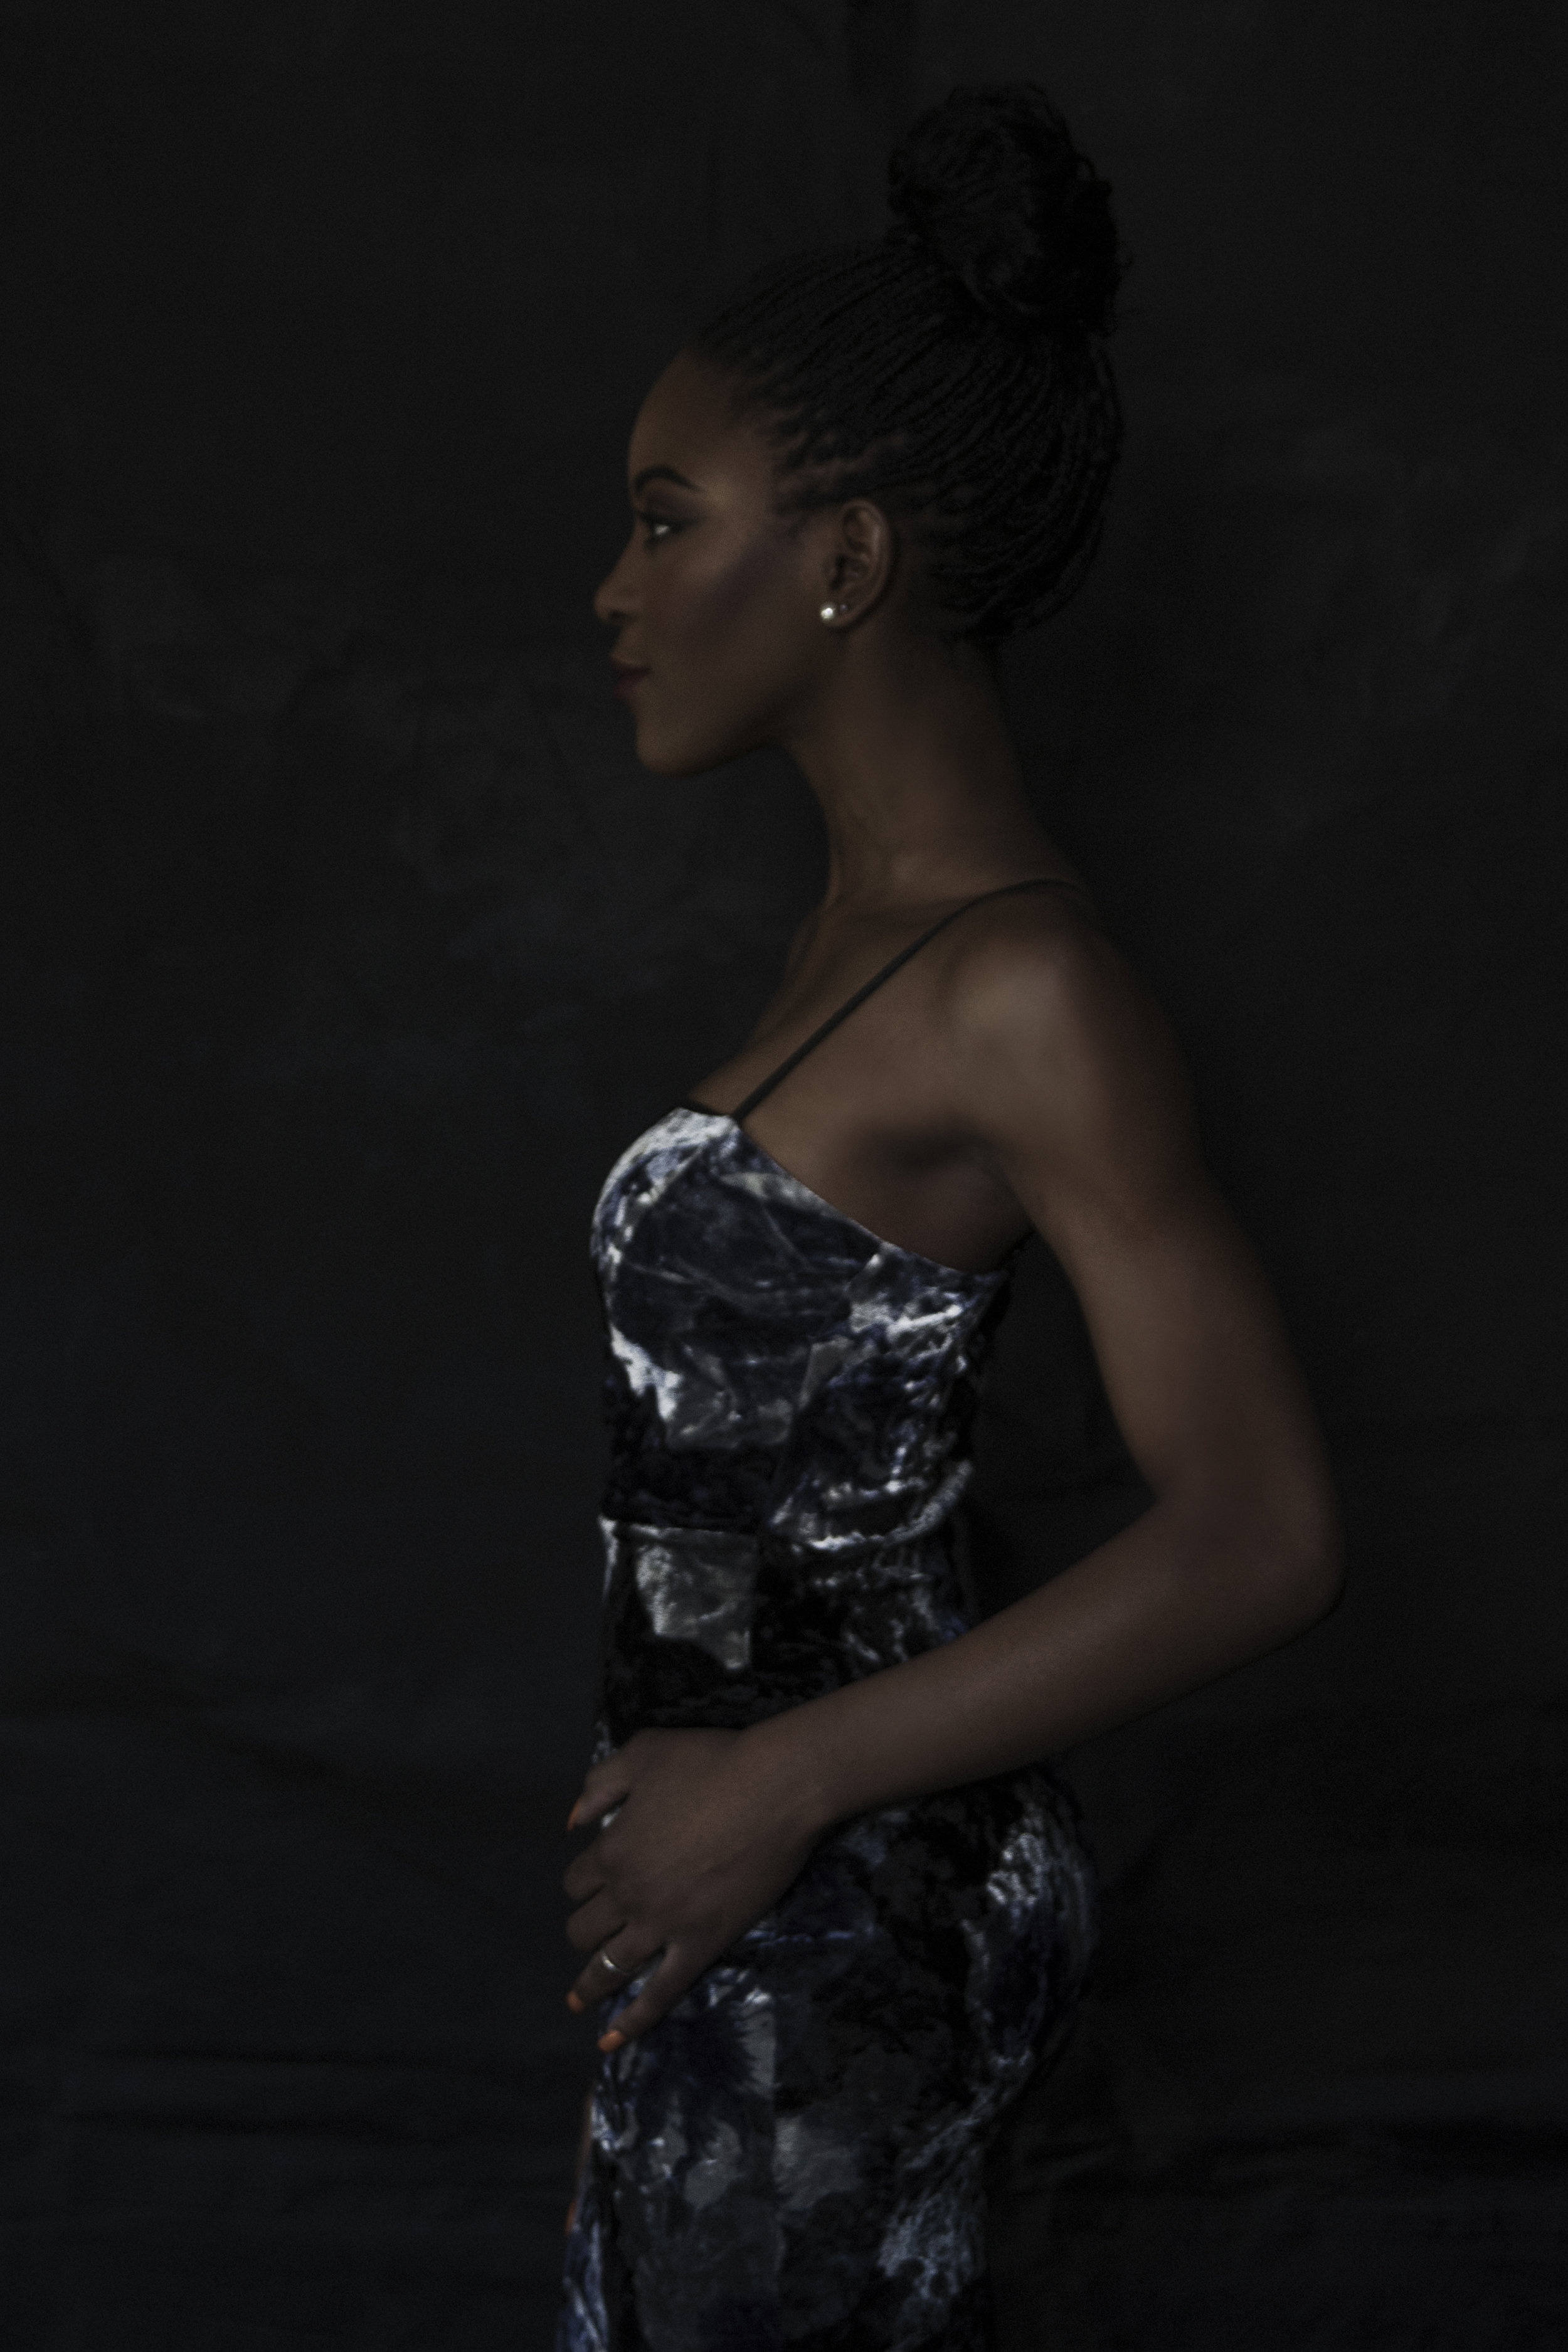 Side Shot of a woman